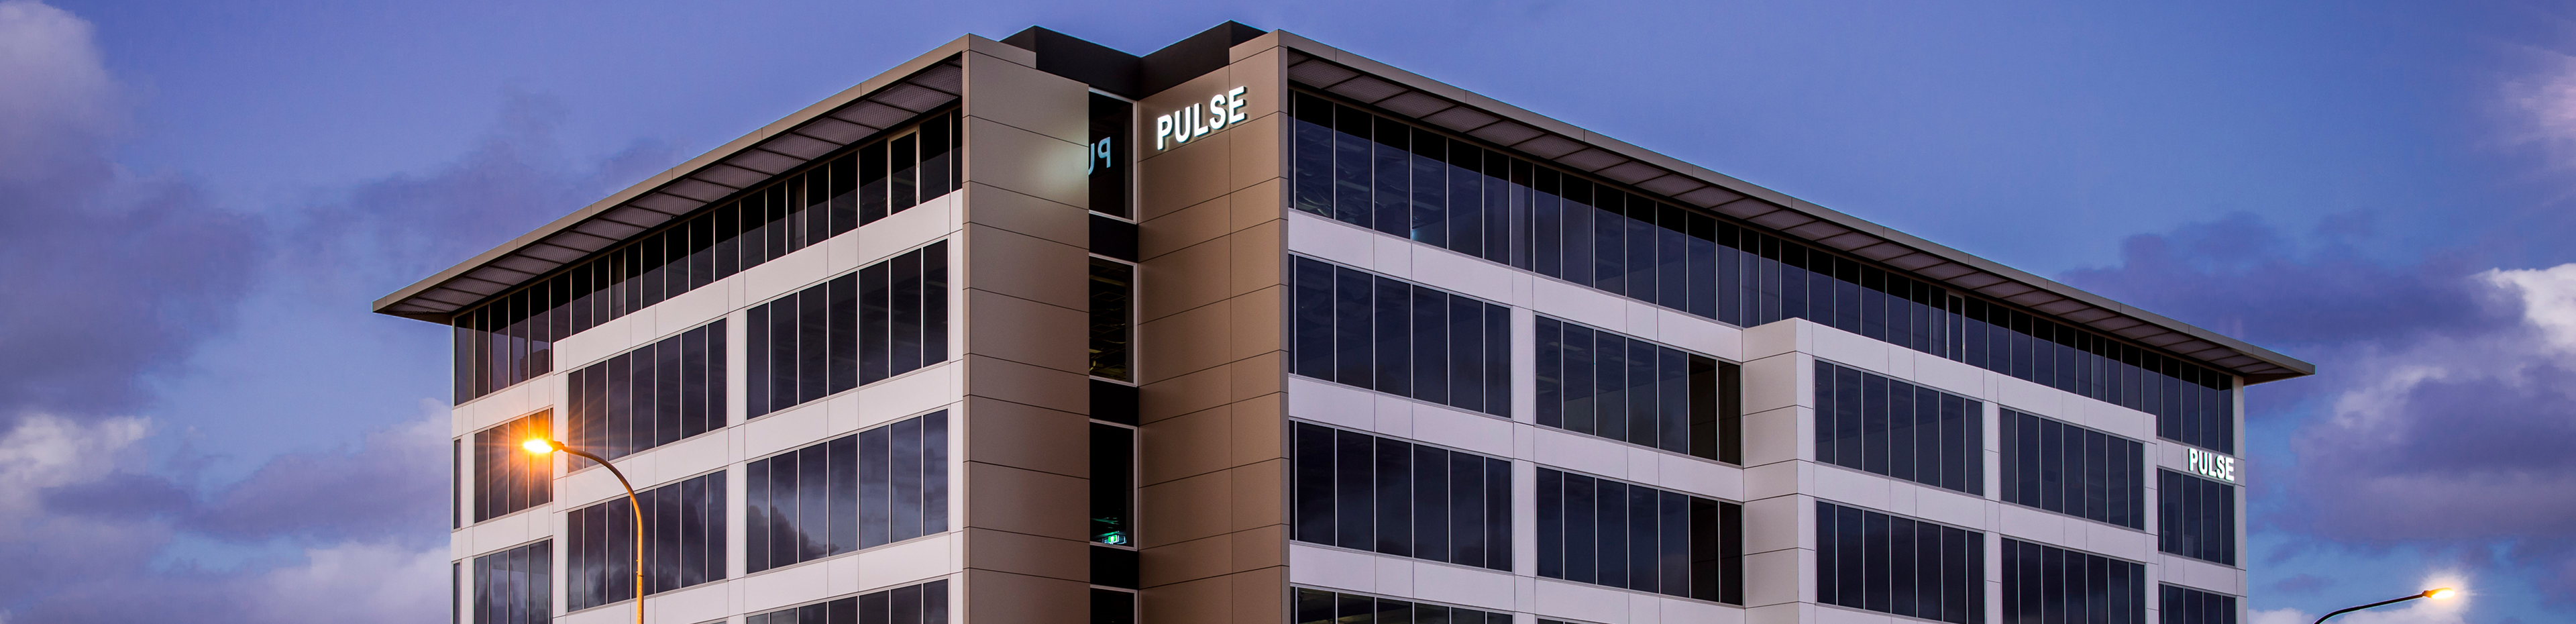 Pulse Medical Centre: ACM Panels